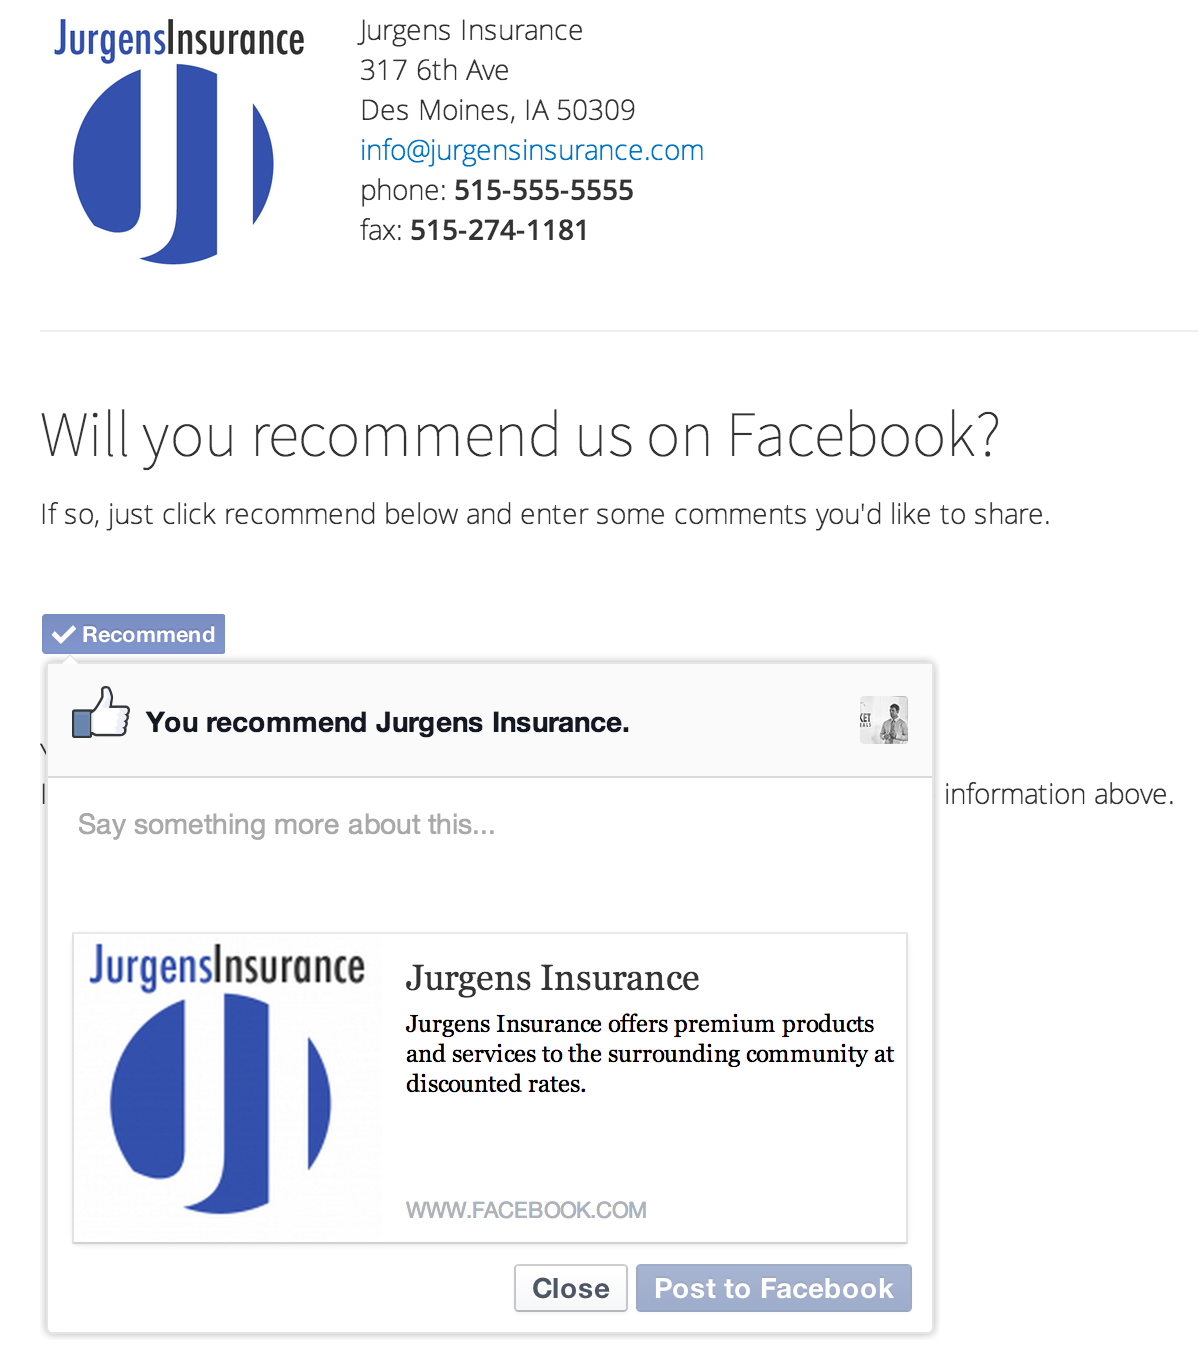 Demonstrates how a customer can recommend an agency on Facebook.